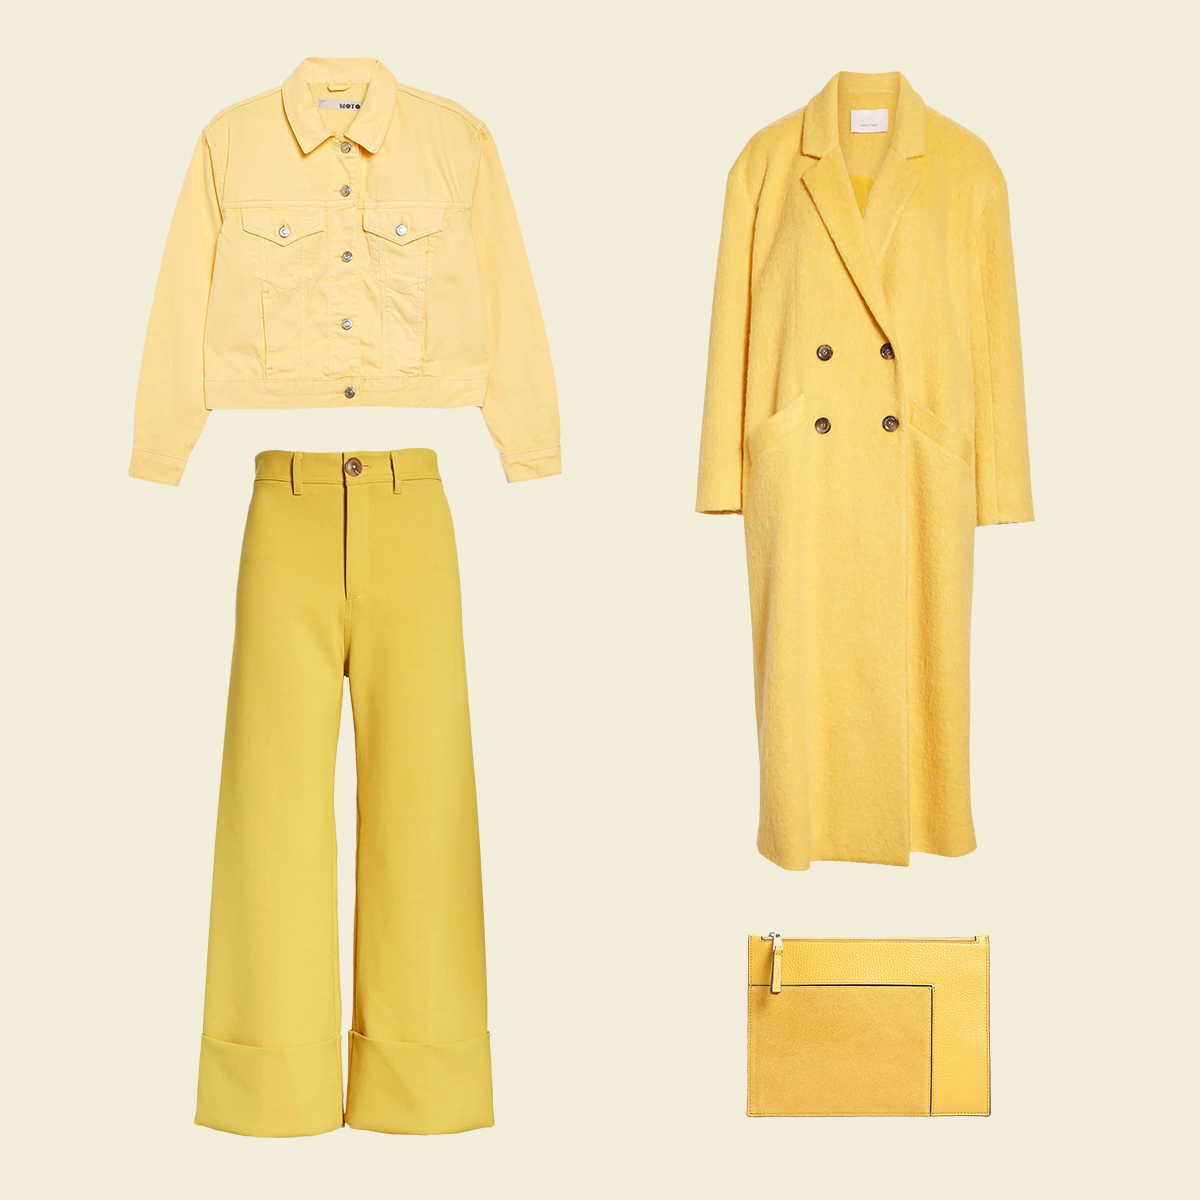 Three pastel women's garments in yellow.